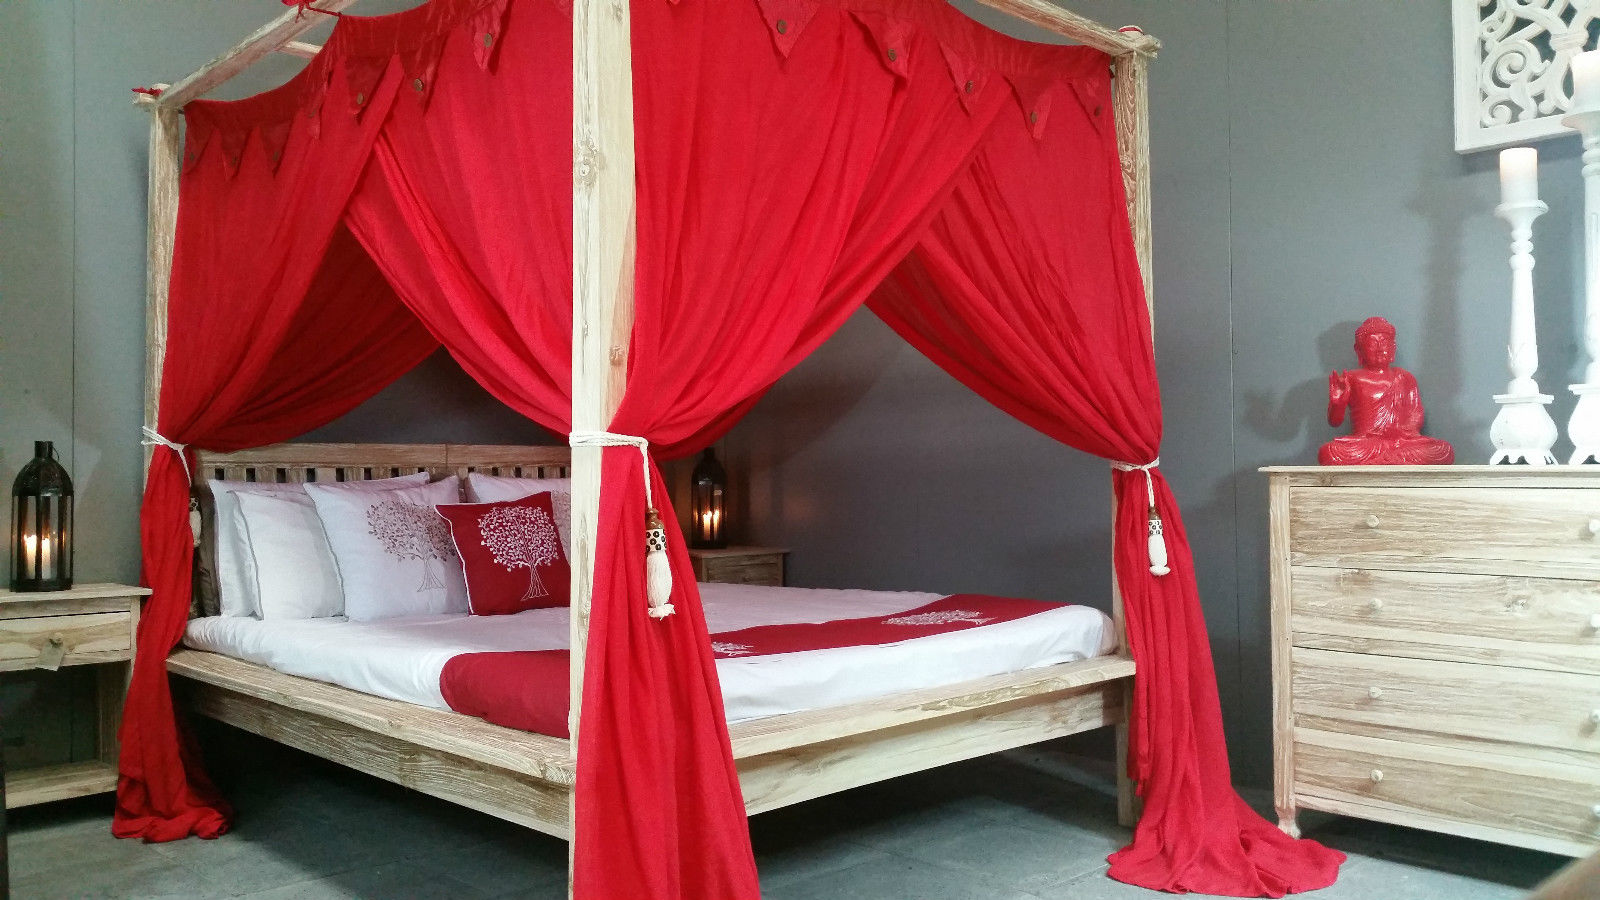 Boho bedroom with bright red canopy and wooden four poster bed